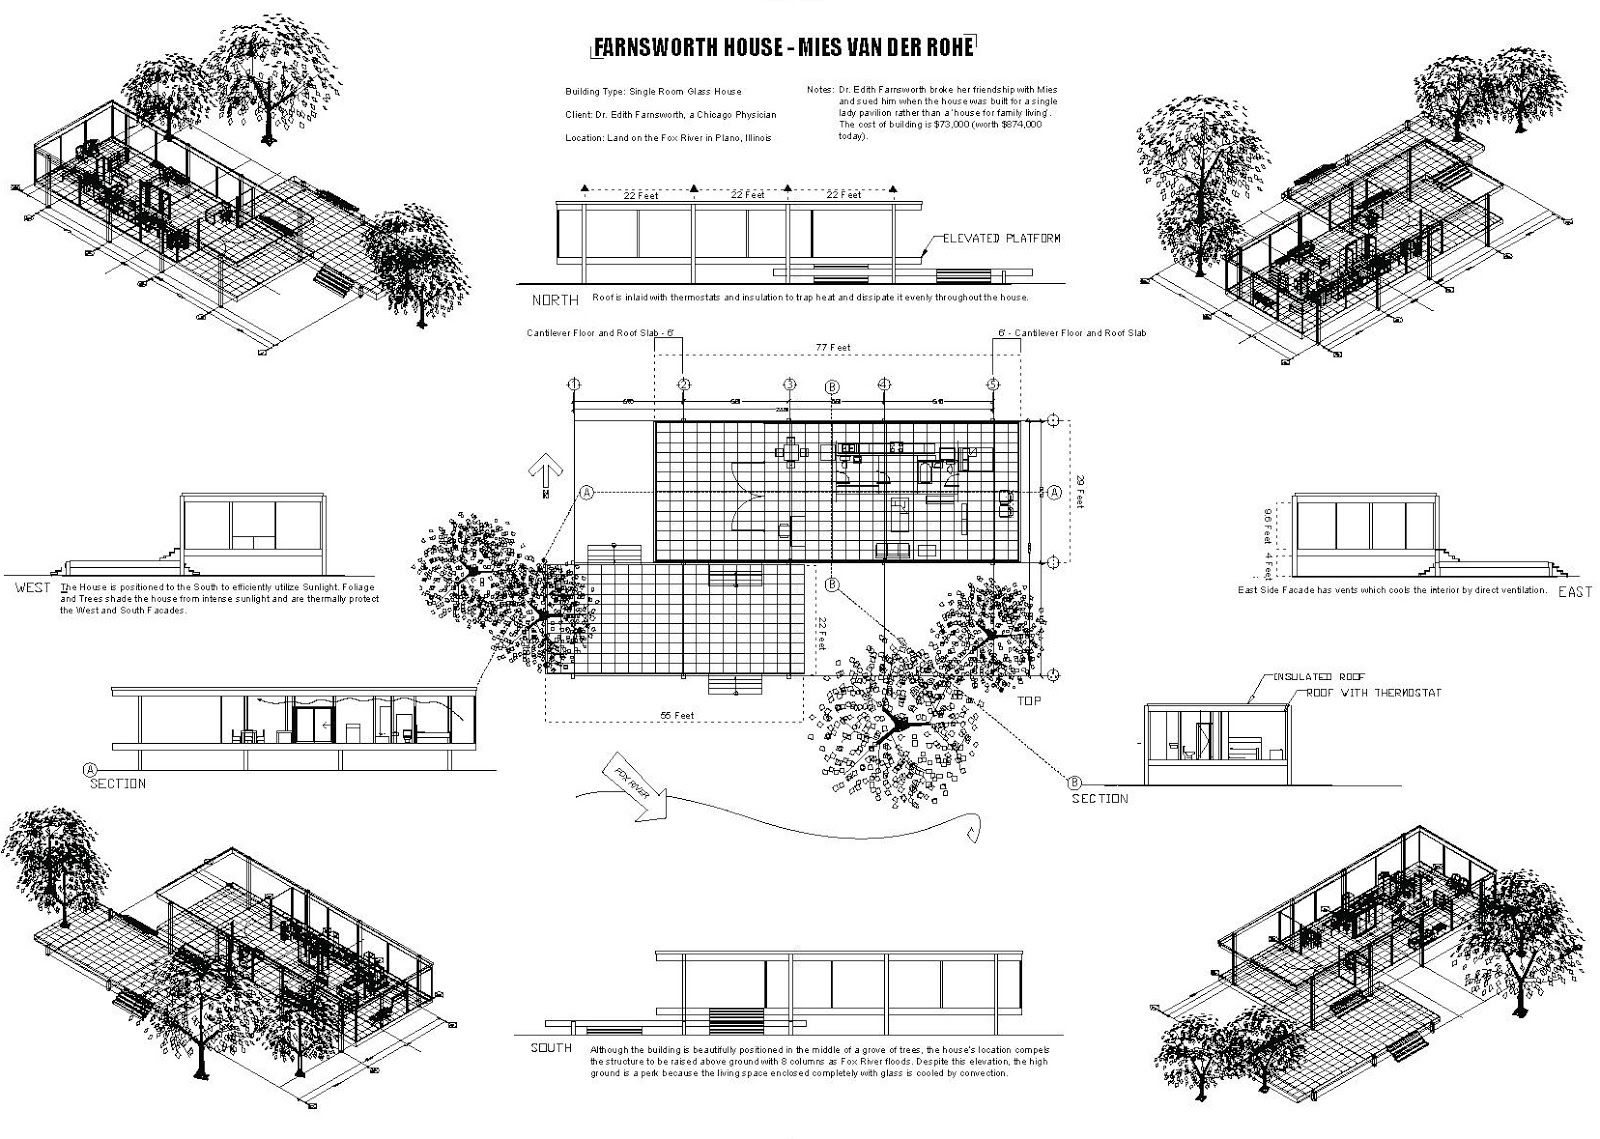 Farnsworth house plan maestri mies pinterest house for Farnsworth house floor plan